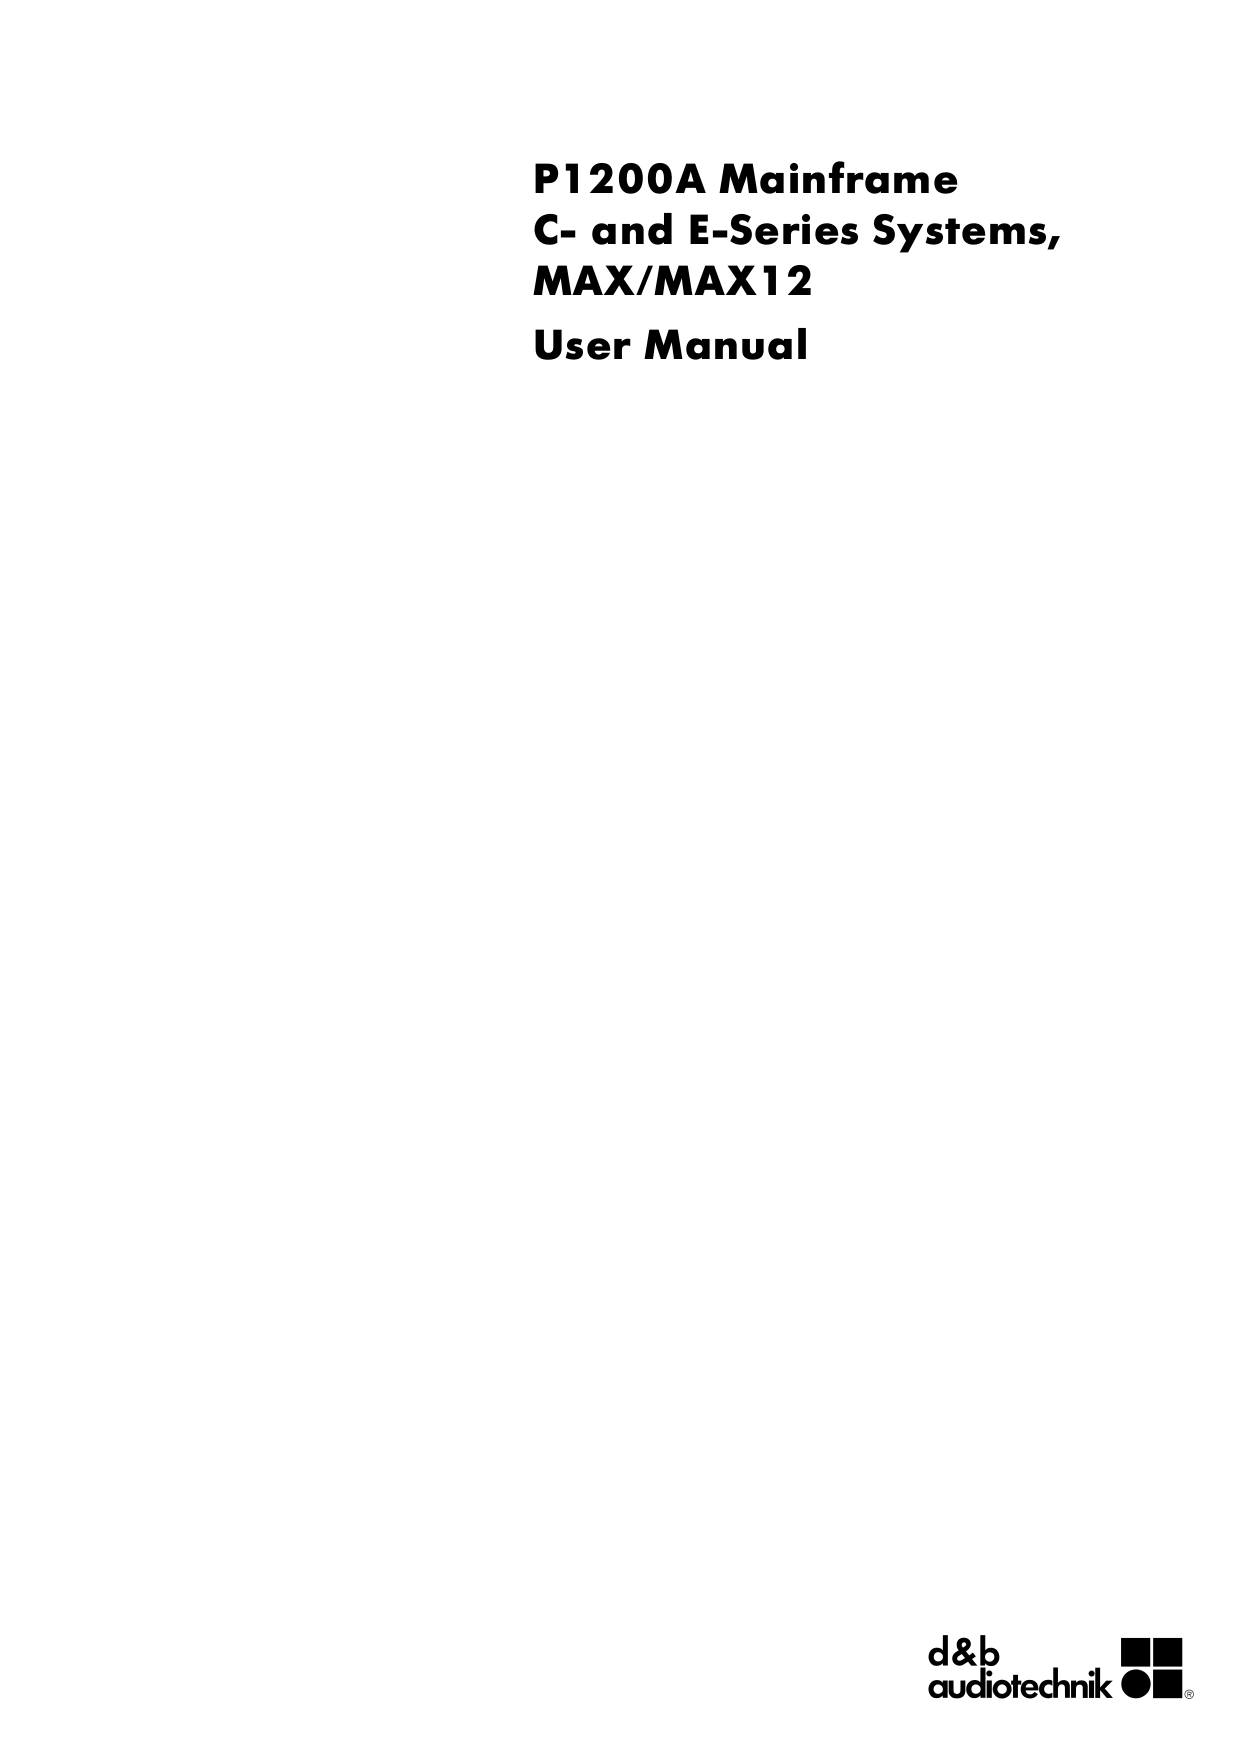 pdf for Lanzar Subwoofer MAX MAX12 manual